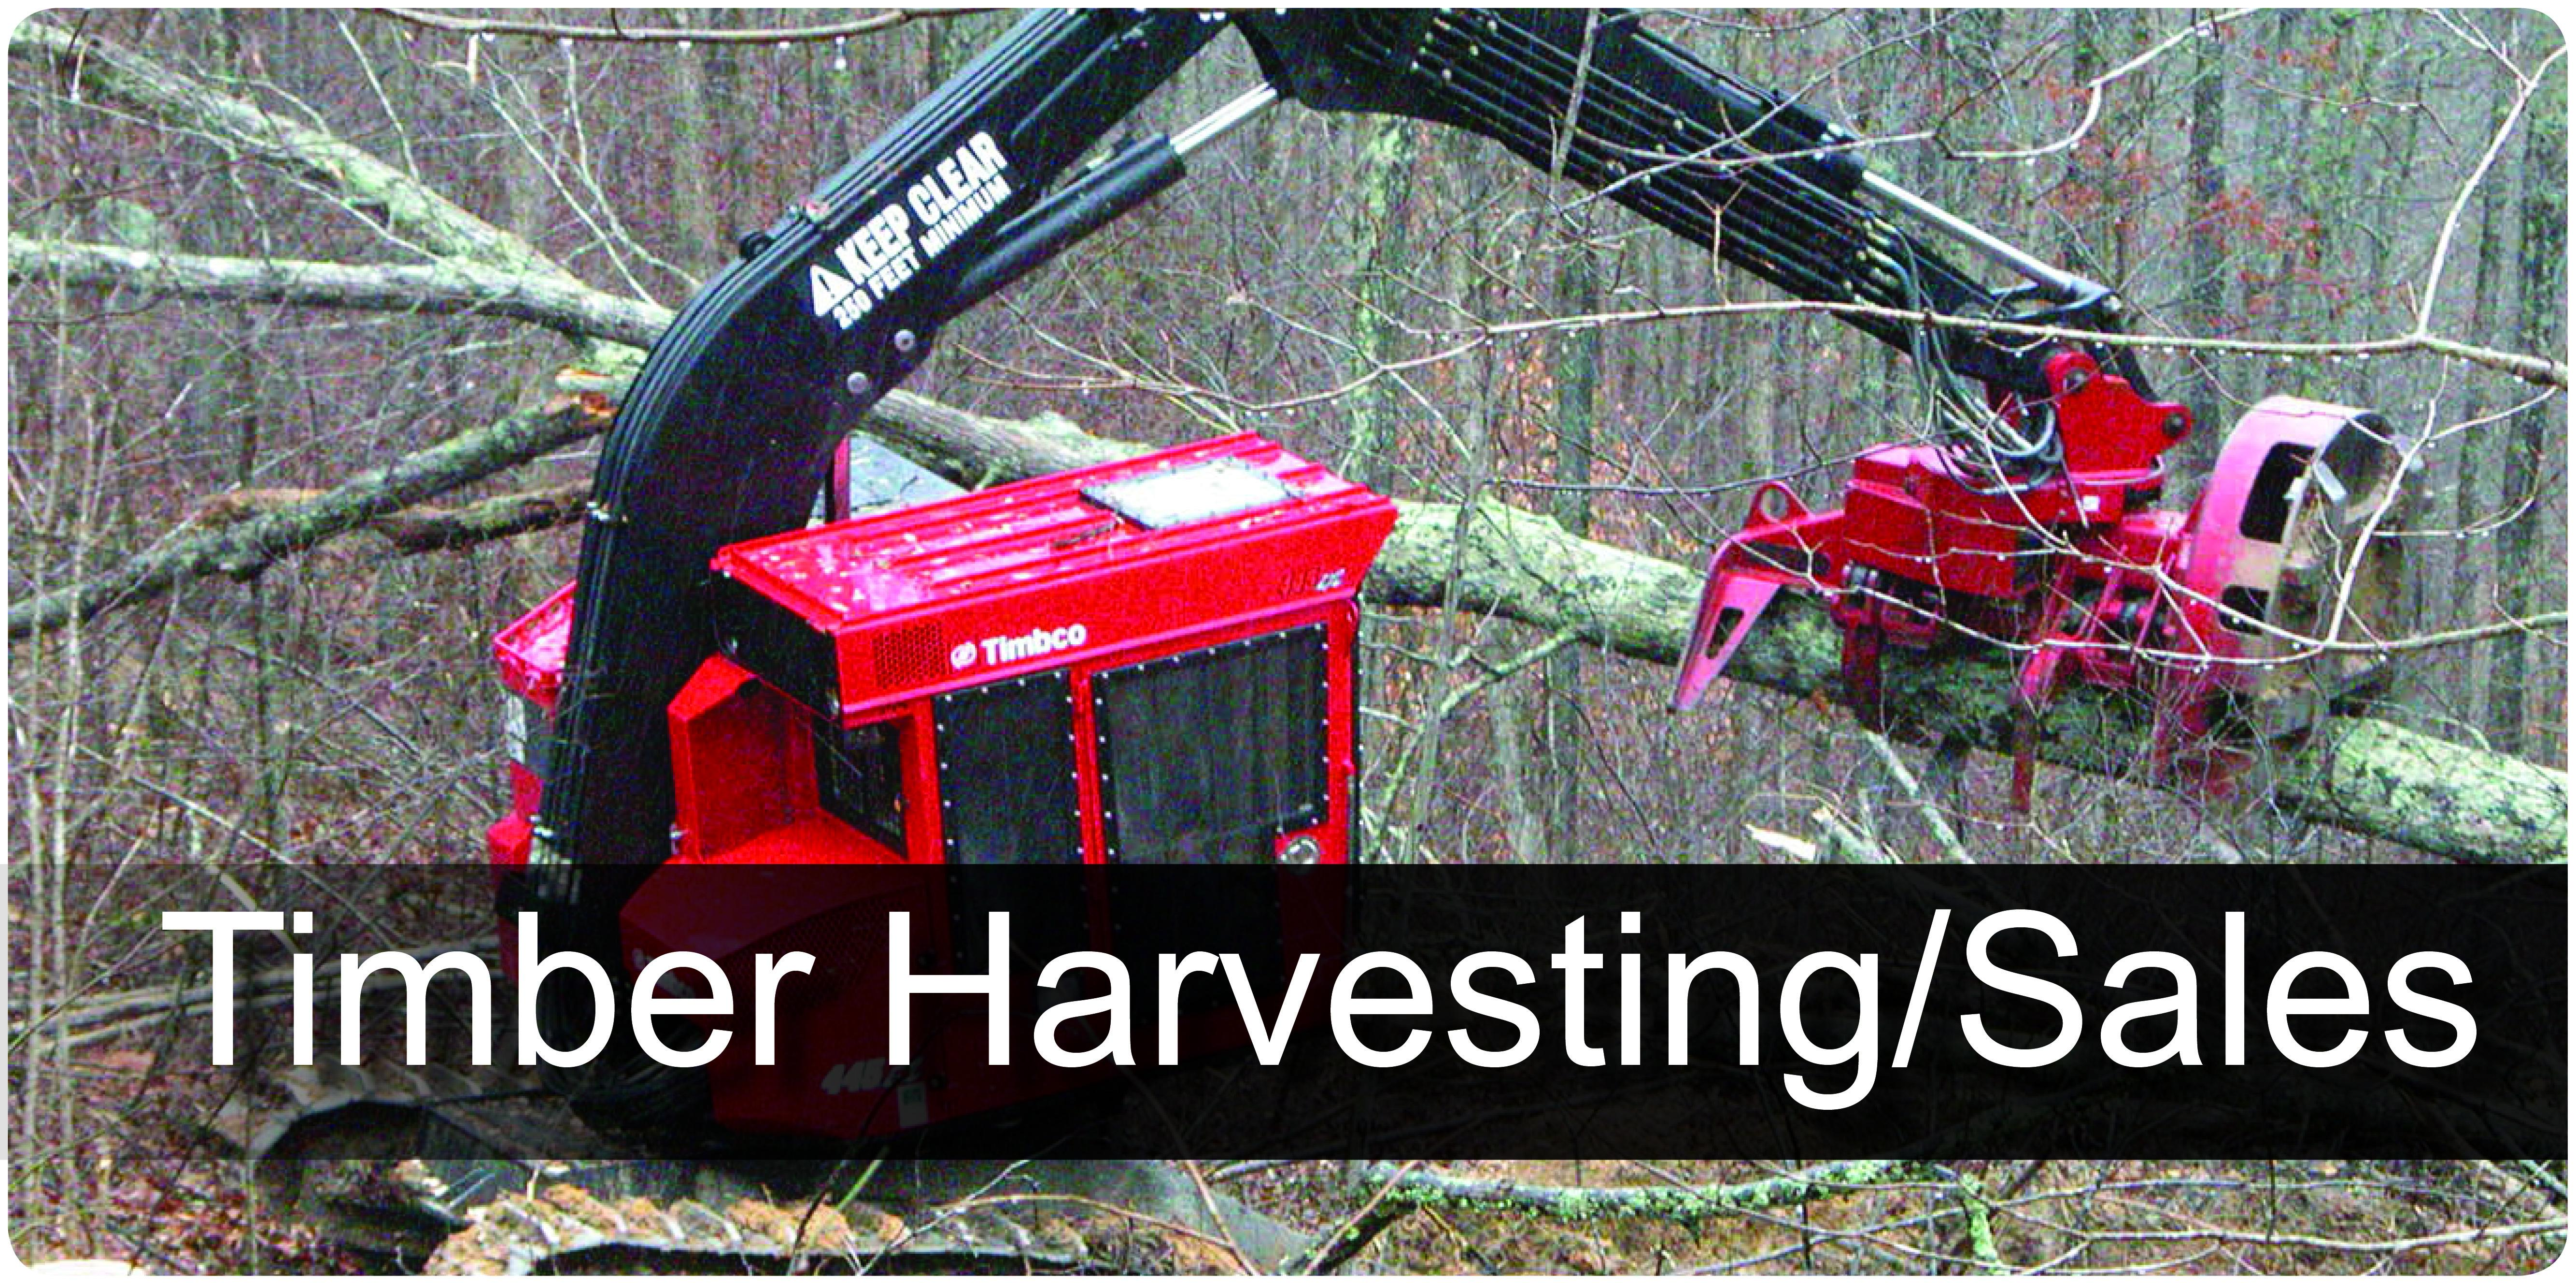 Timber Harvesting